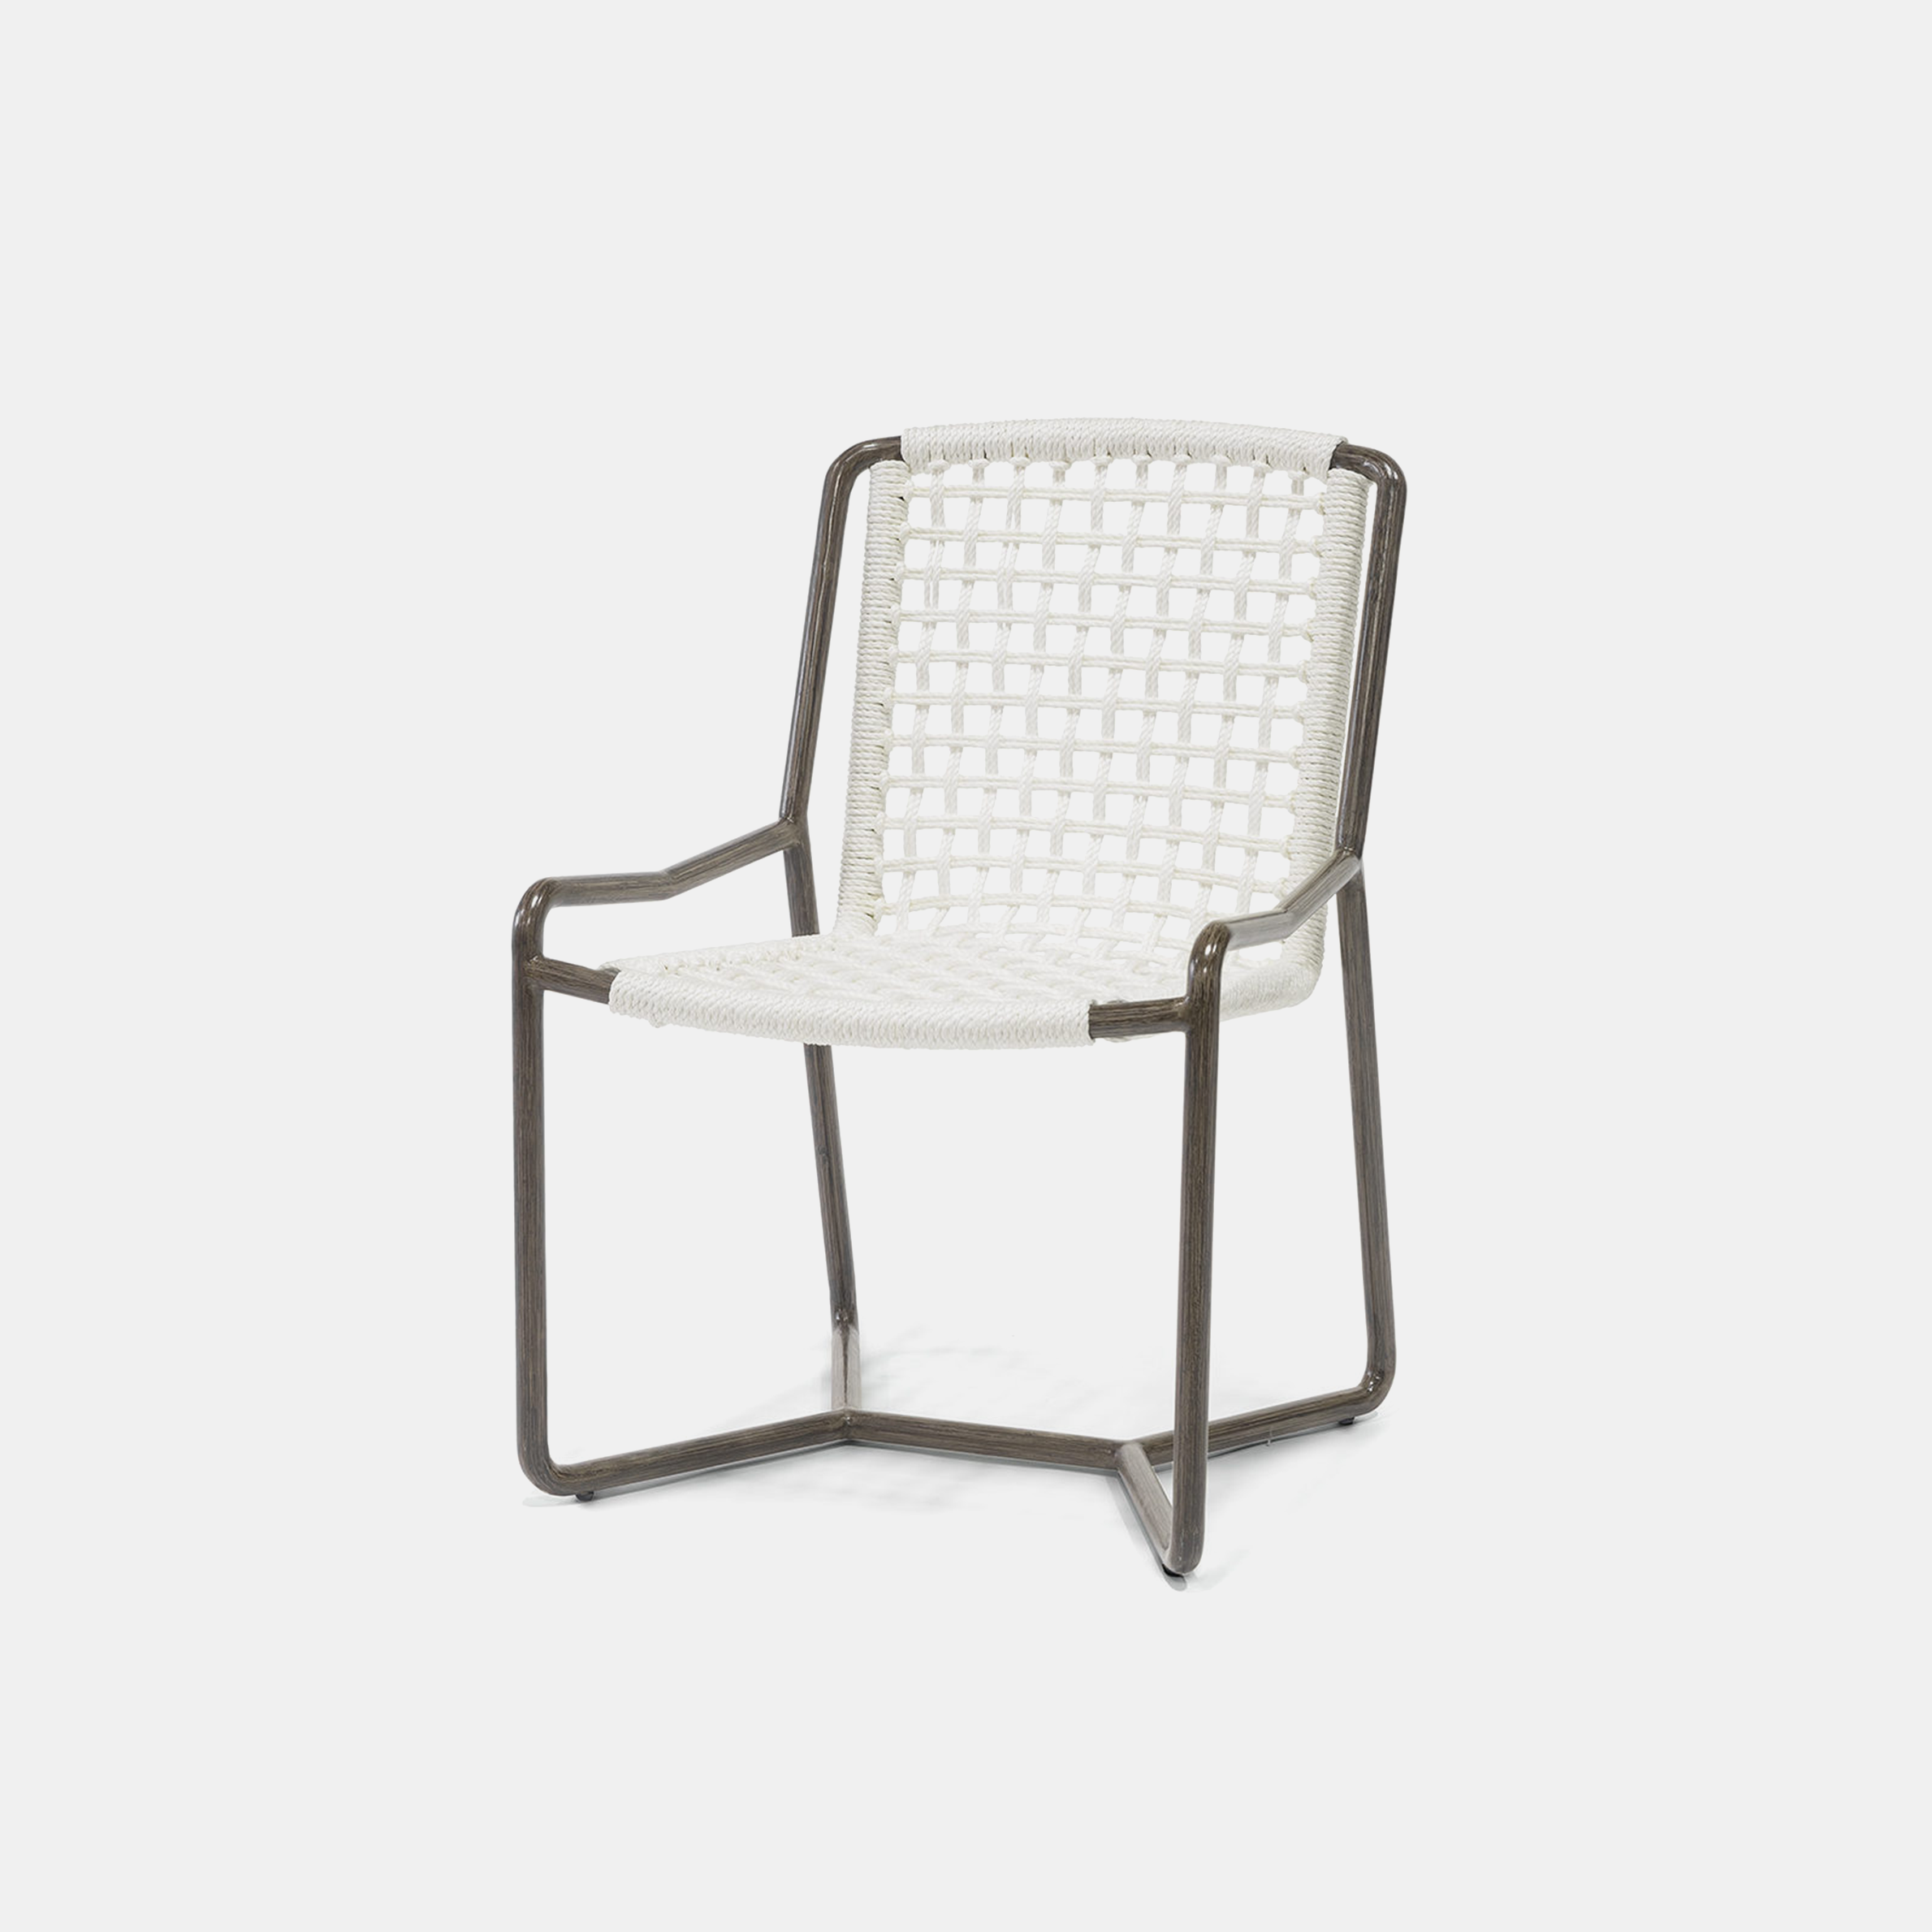 "Dockside Dining Chair  23.75""w x 25""d x 34.75""h Also available as lounge chair, counter stool, and bar stool. SKU17503PLK"